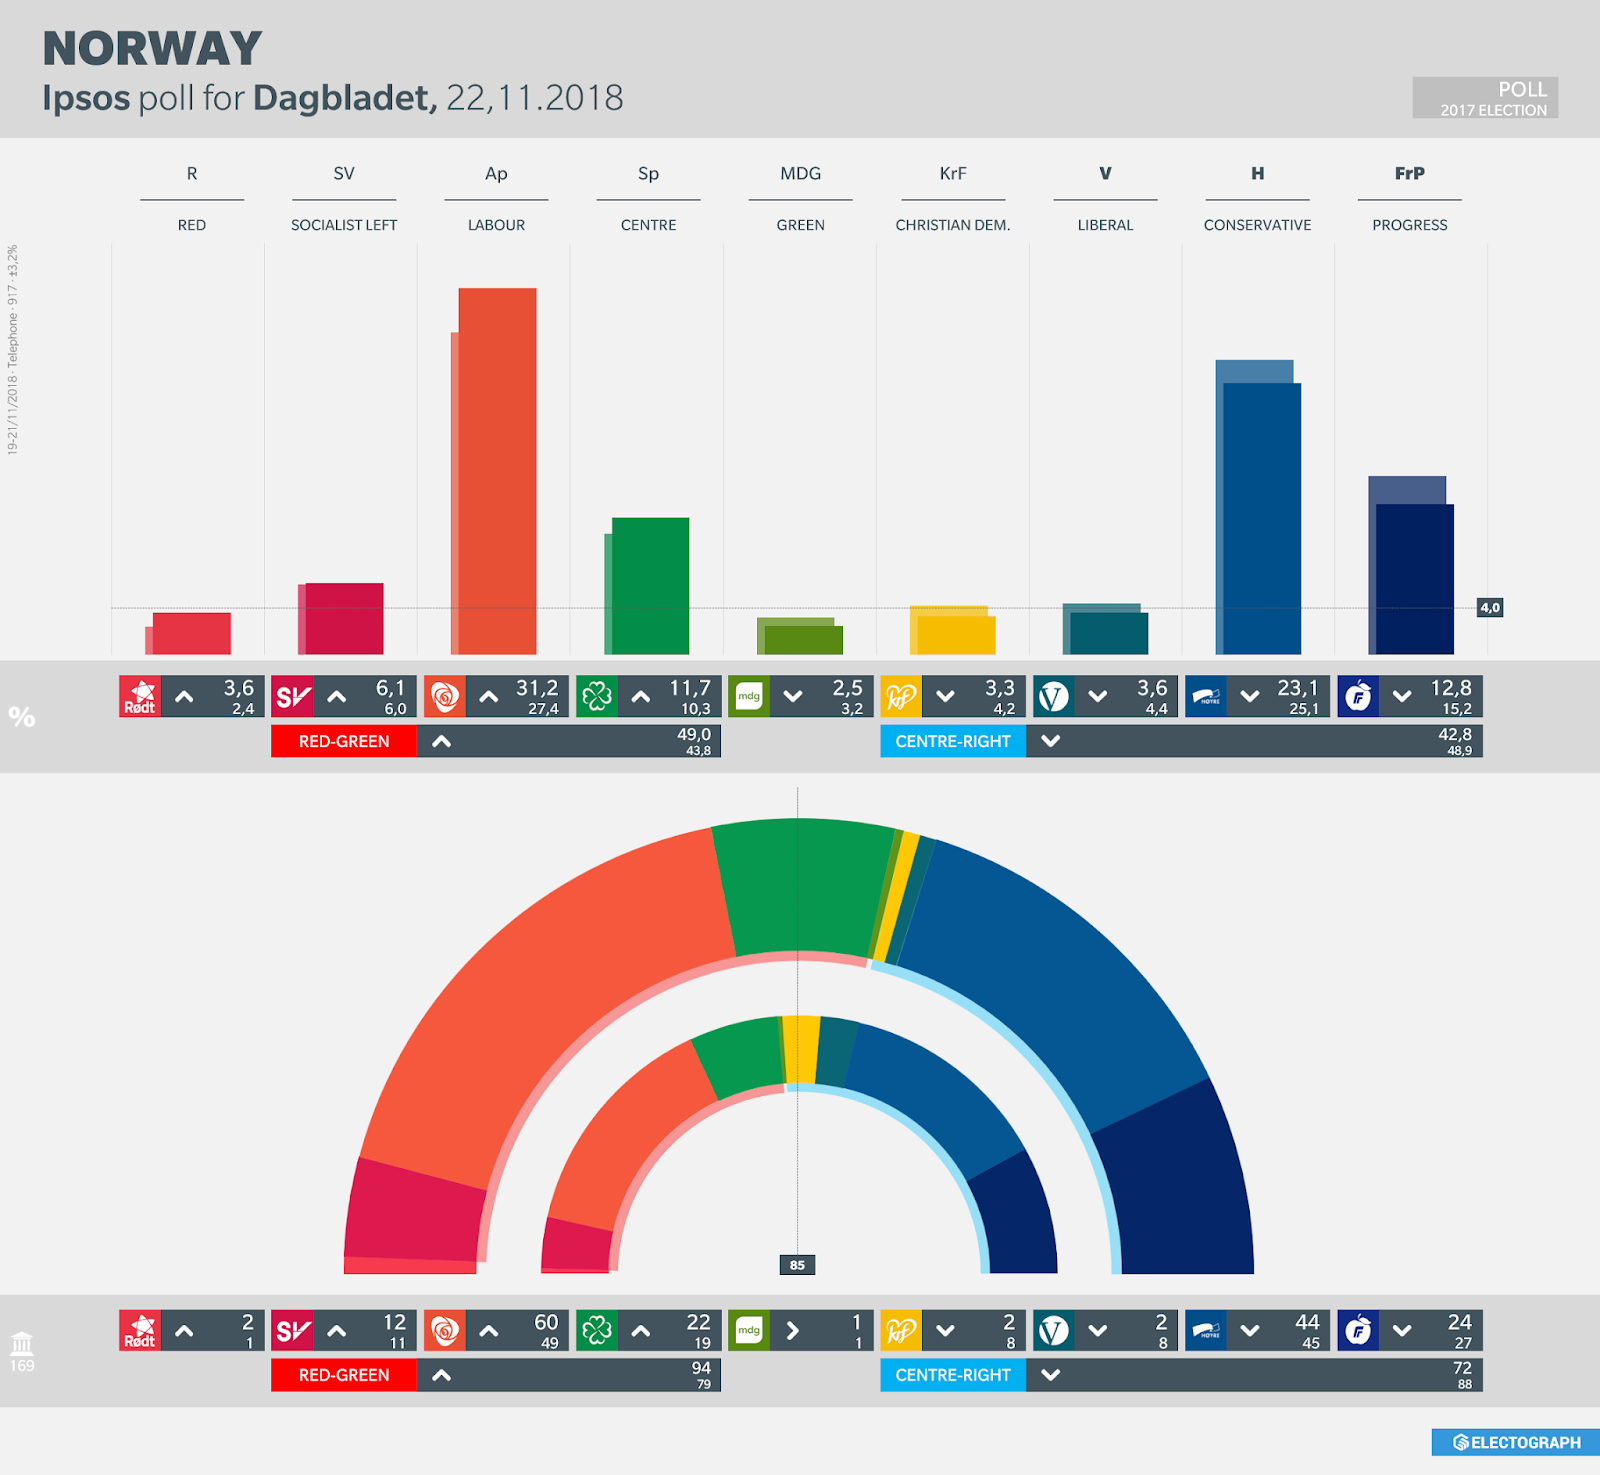 NORWAY: Ipsos poll chart for Dagbladet, 22 November 2018